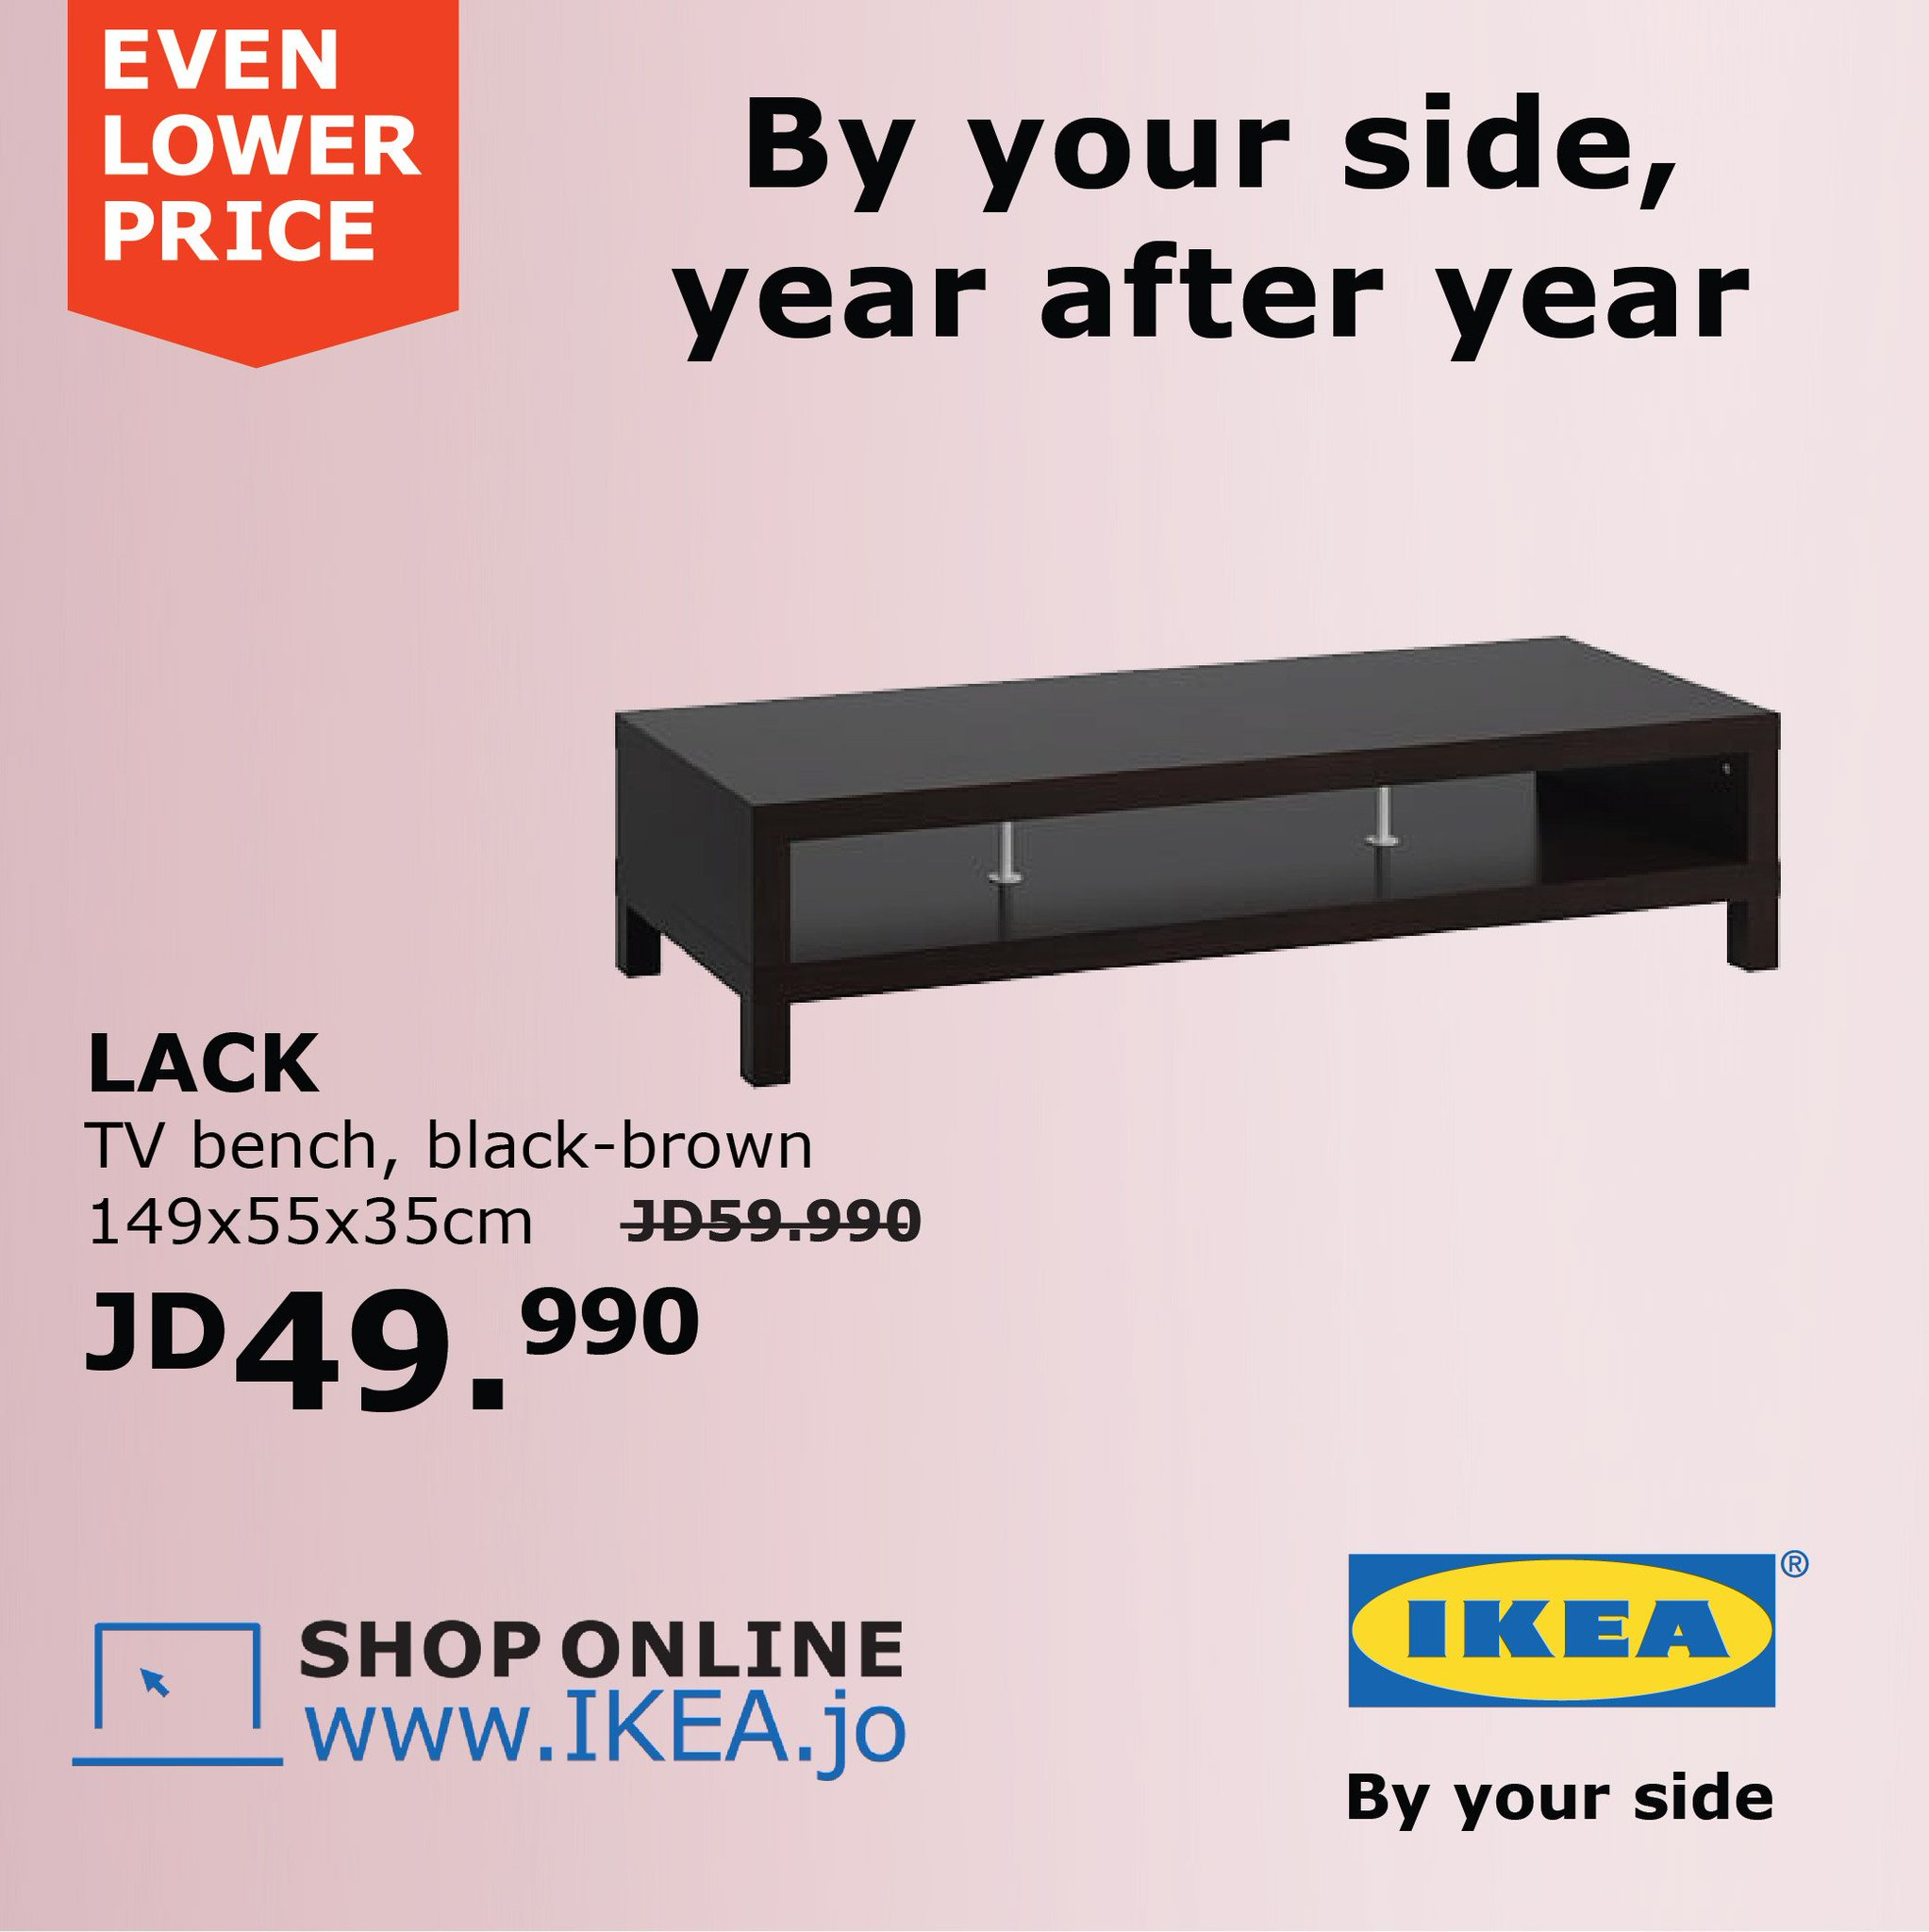 Sensational Ikea Jordan On Twitter Even Lower Price This Year More Of Ocoug Best Dining Table And Chair Ideas Images Ocougorg